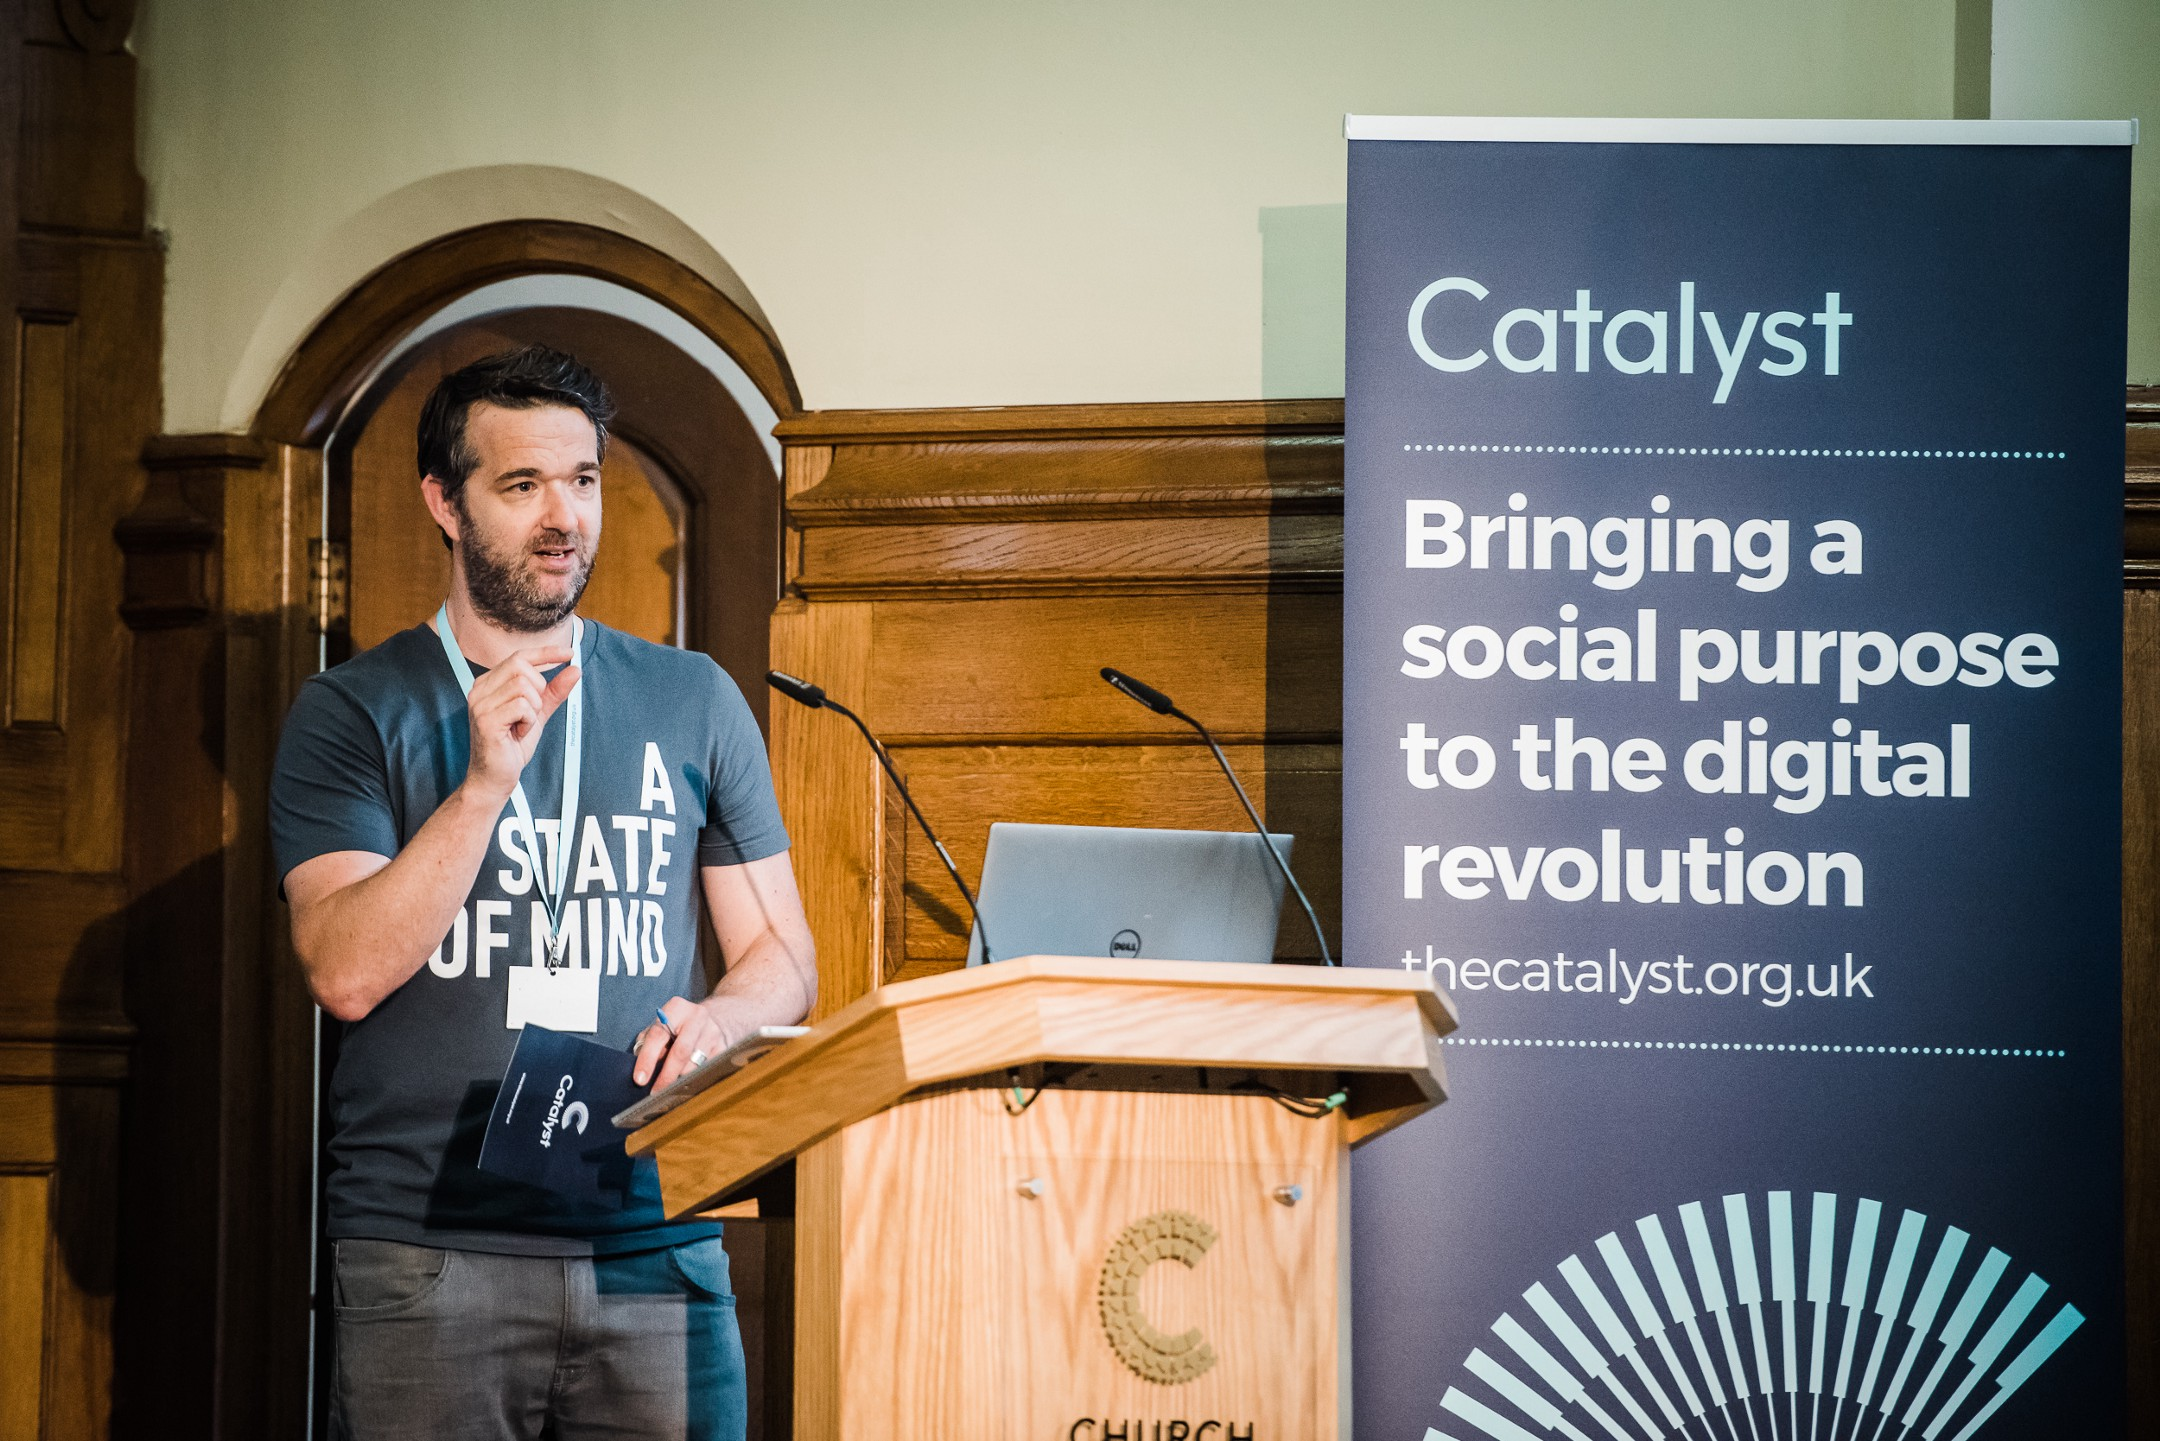 Dan Sutch, Co-Founder of Catalyst, speaking at the inaugural gathering of Catalyst